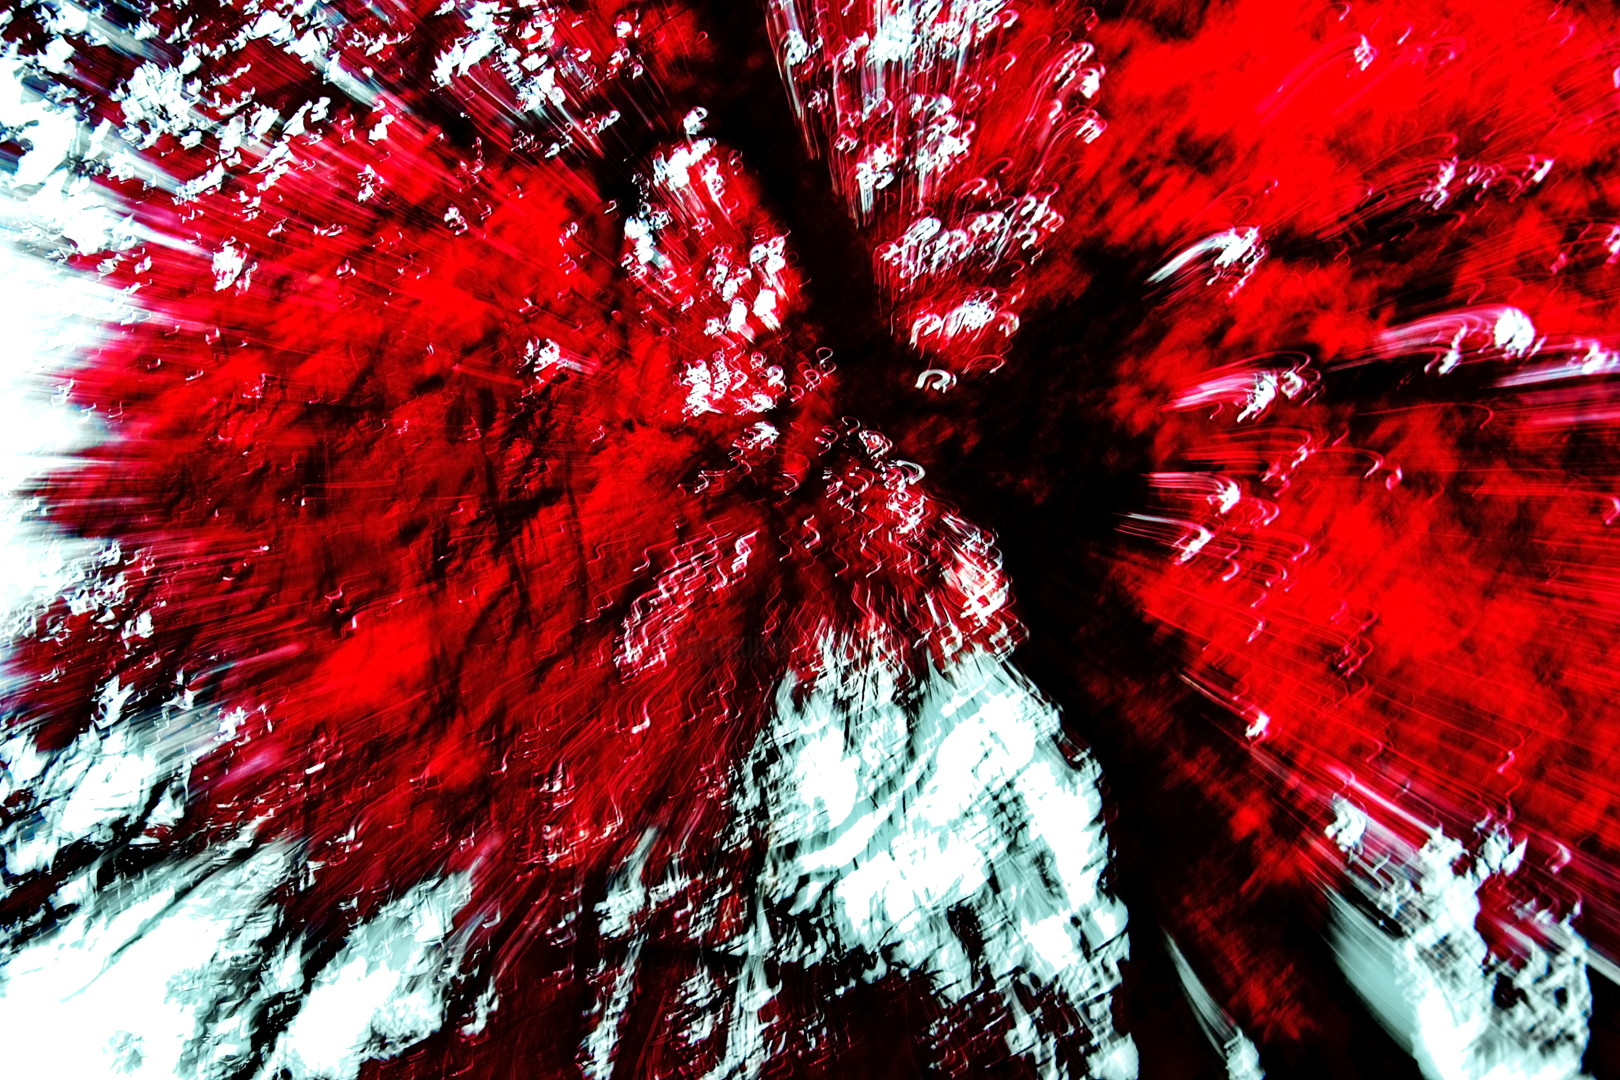 Steevens Hill - Red Life Explosion